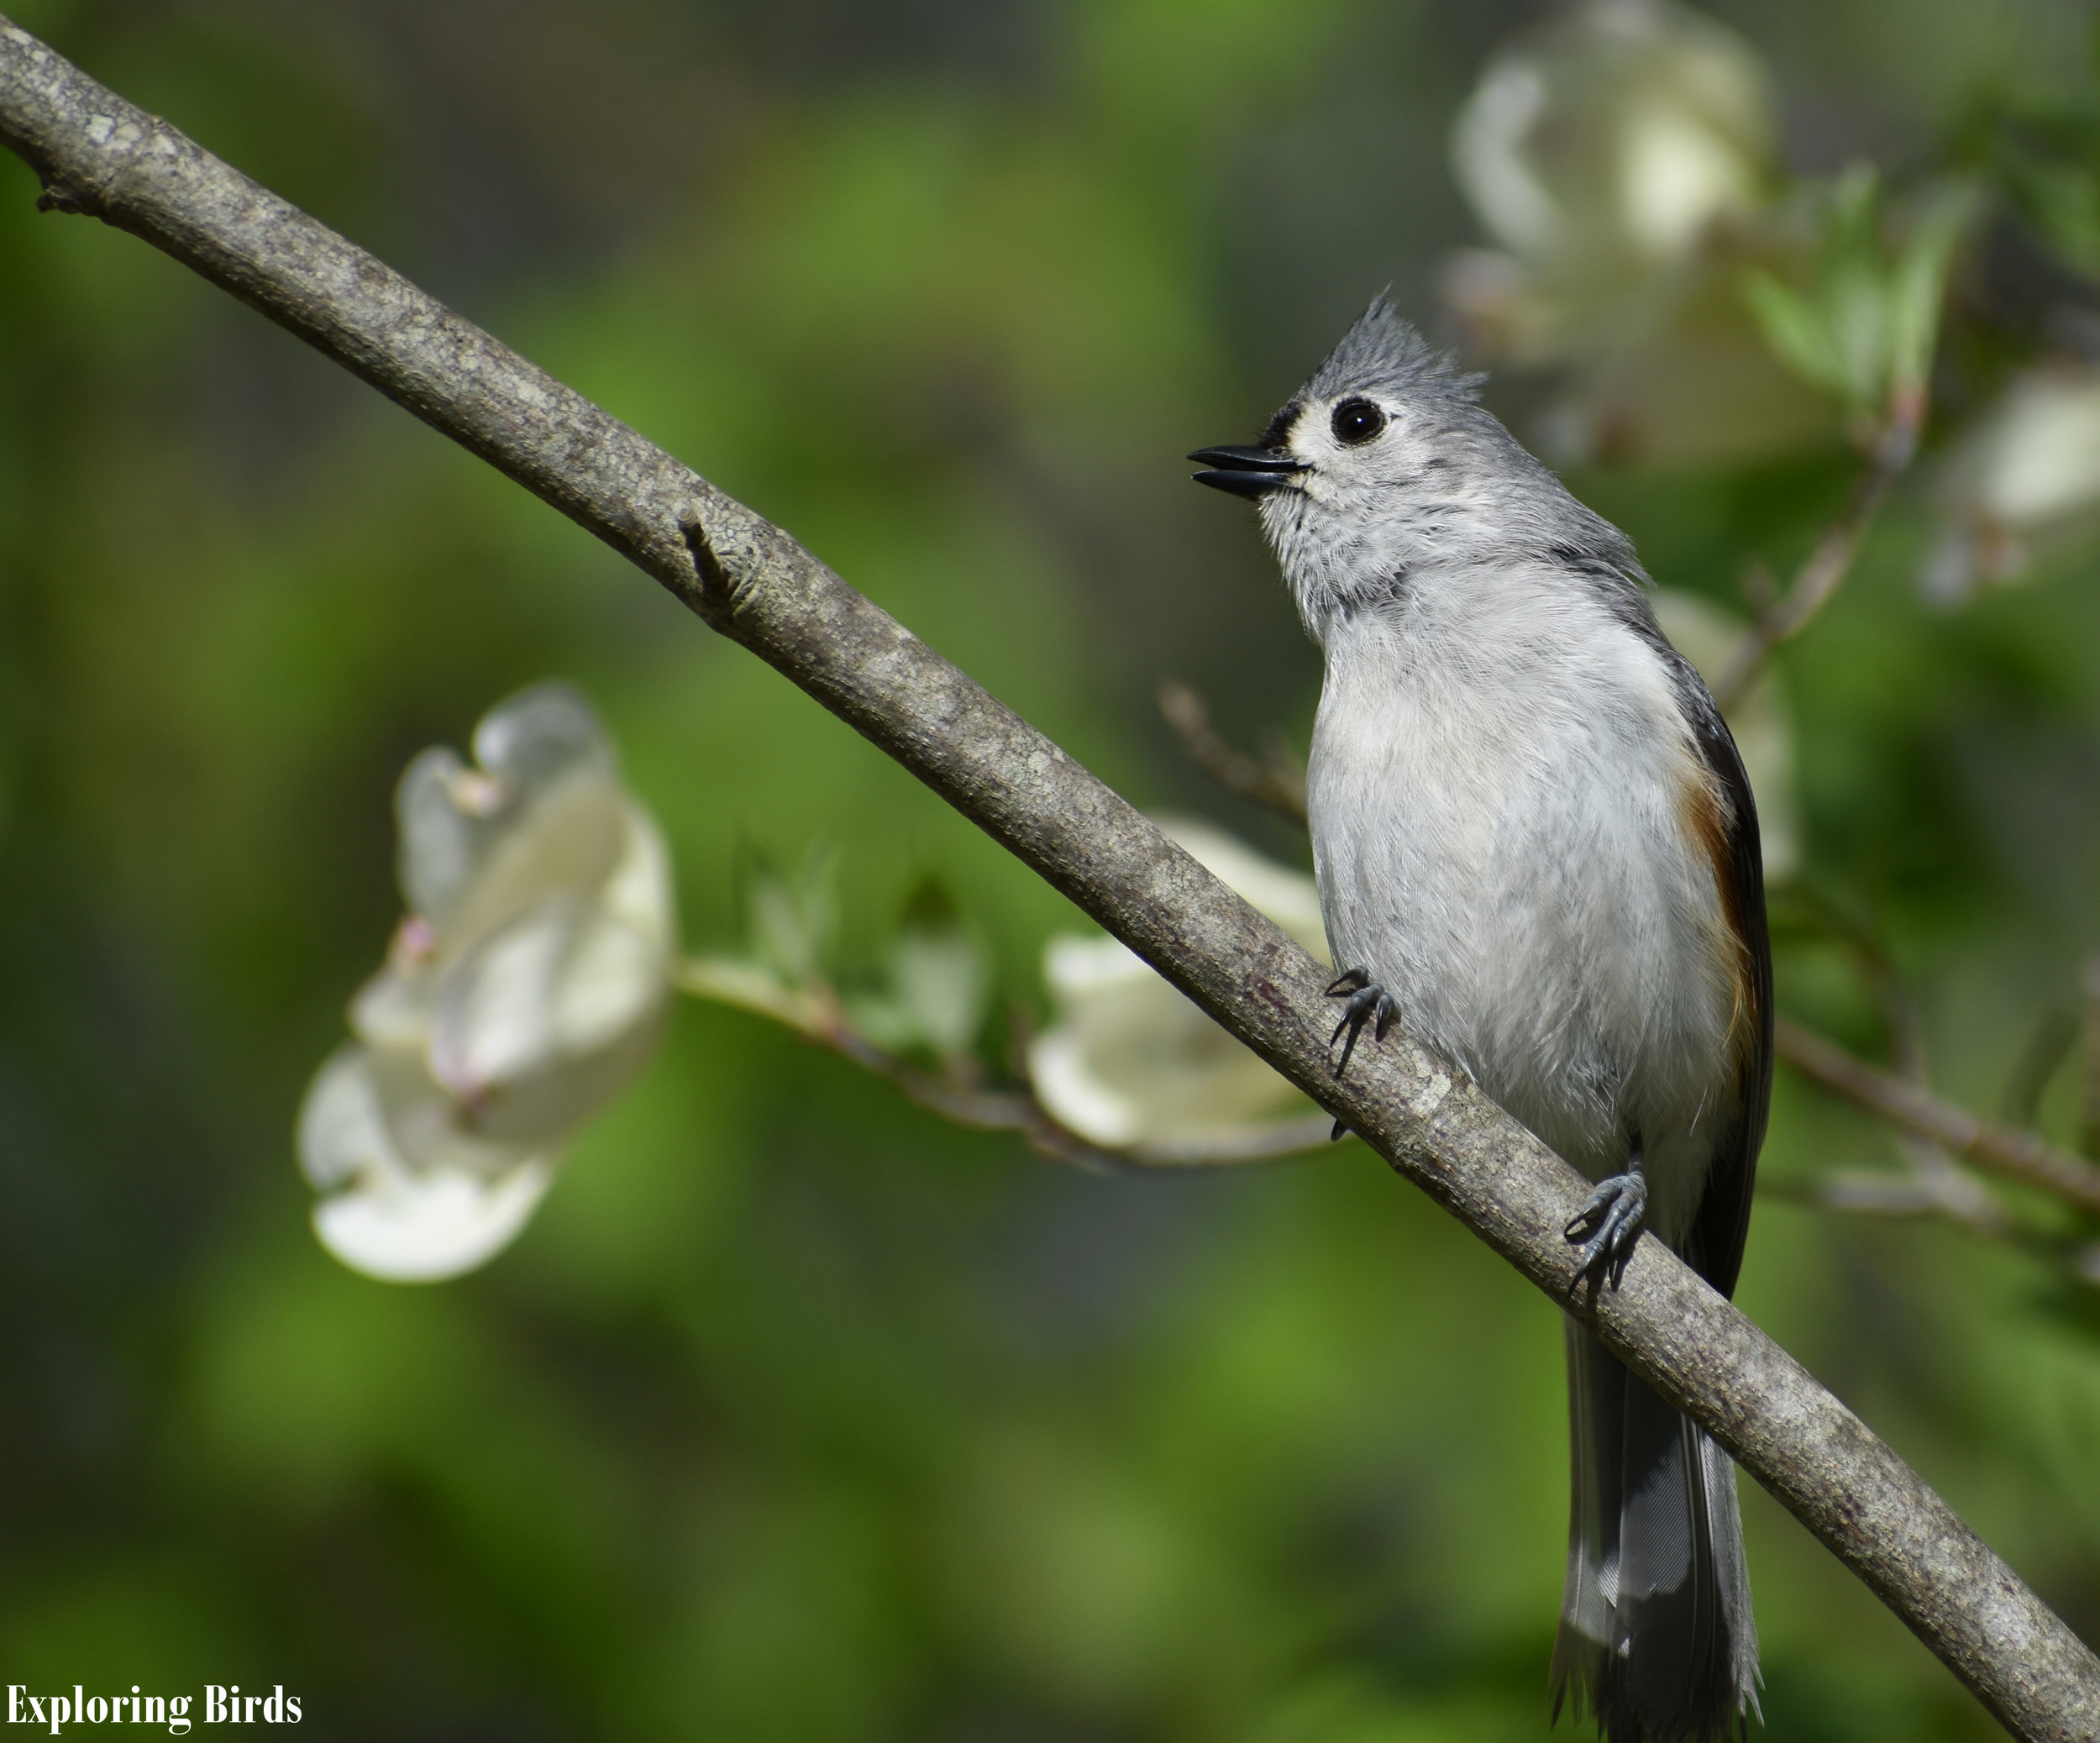 How to Attract Tufted Titmouse